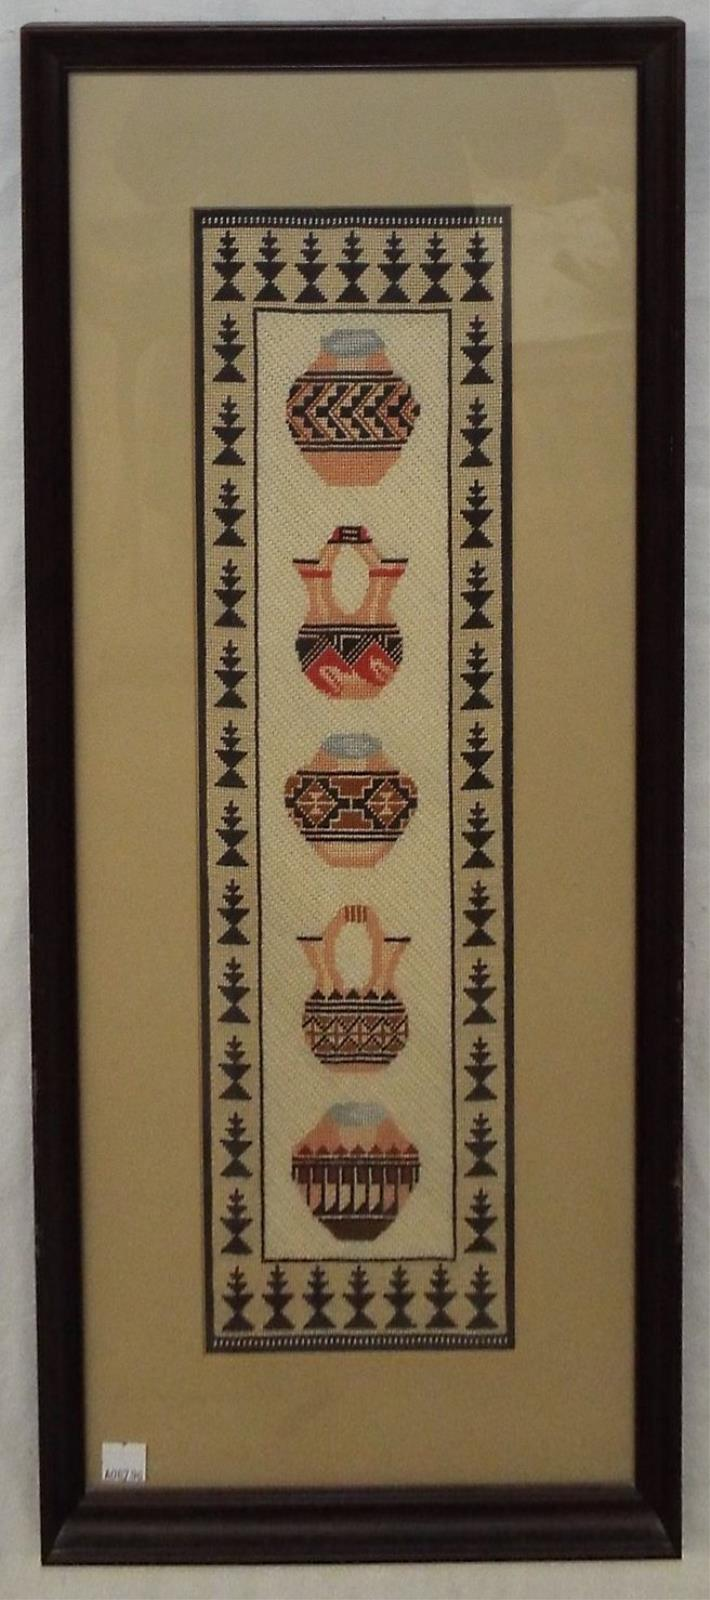 Framed Needlework Of Southwest Pottery Jars